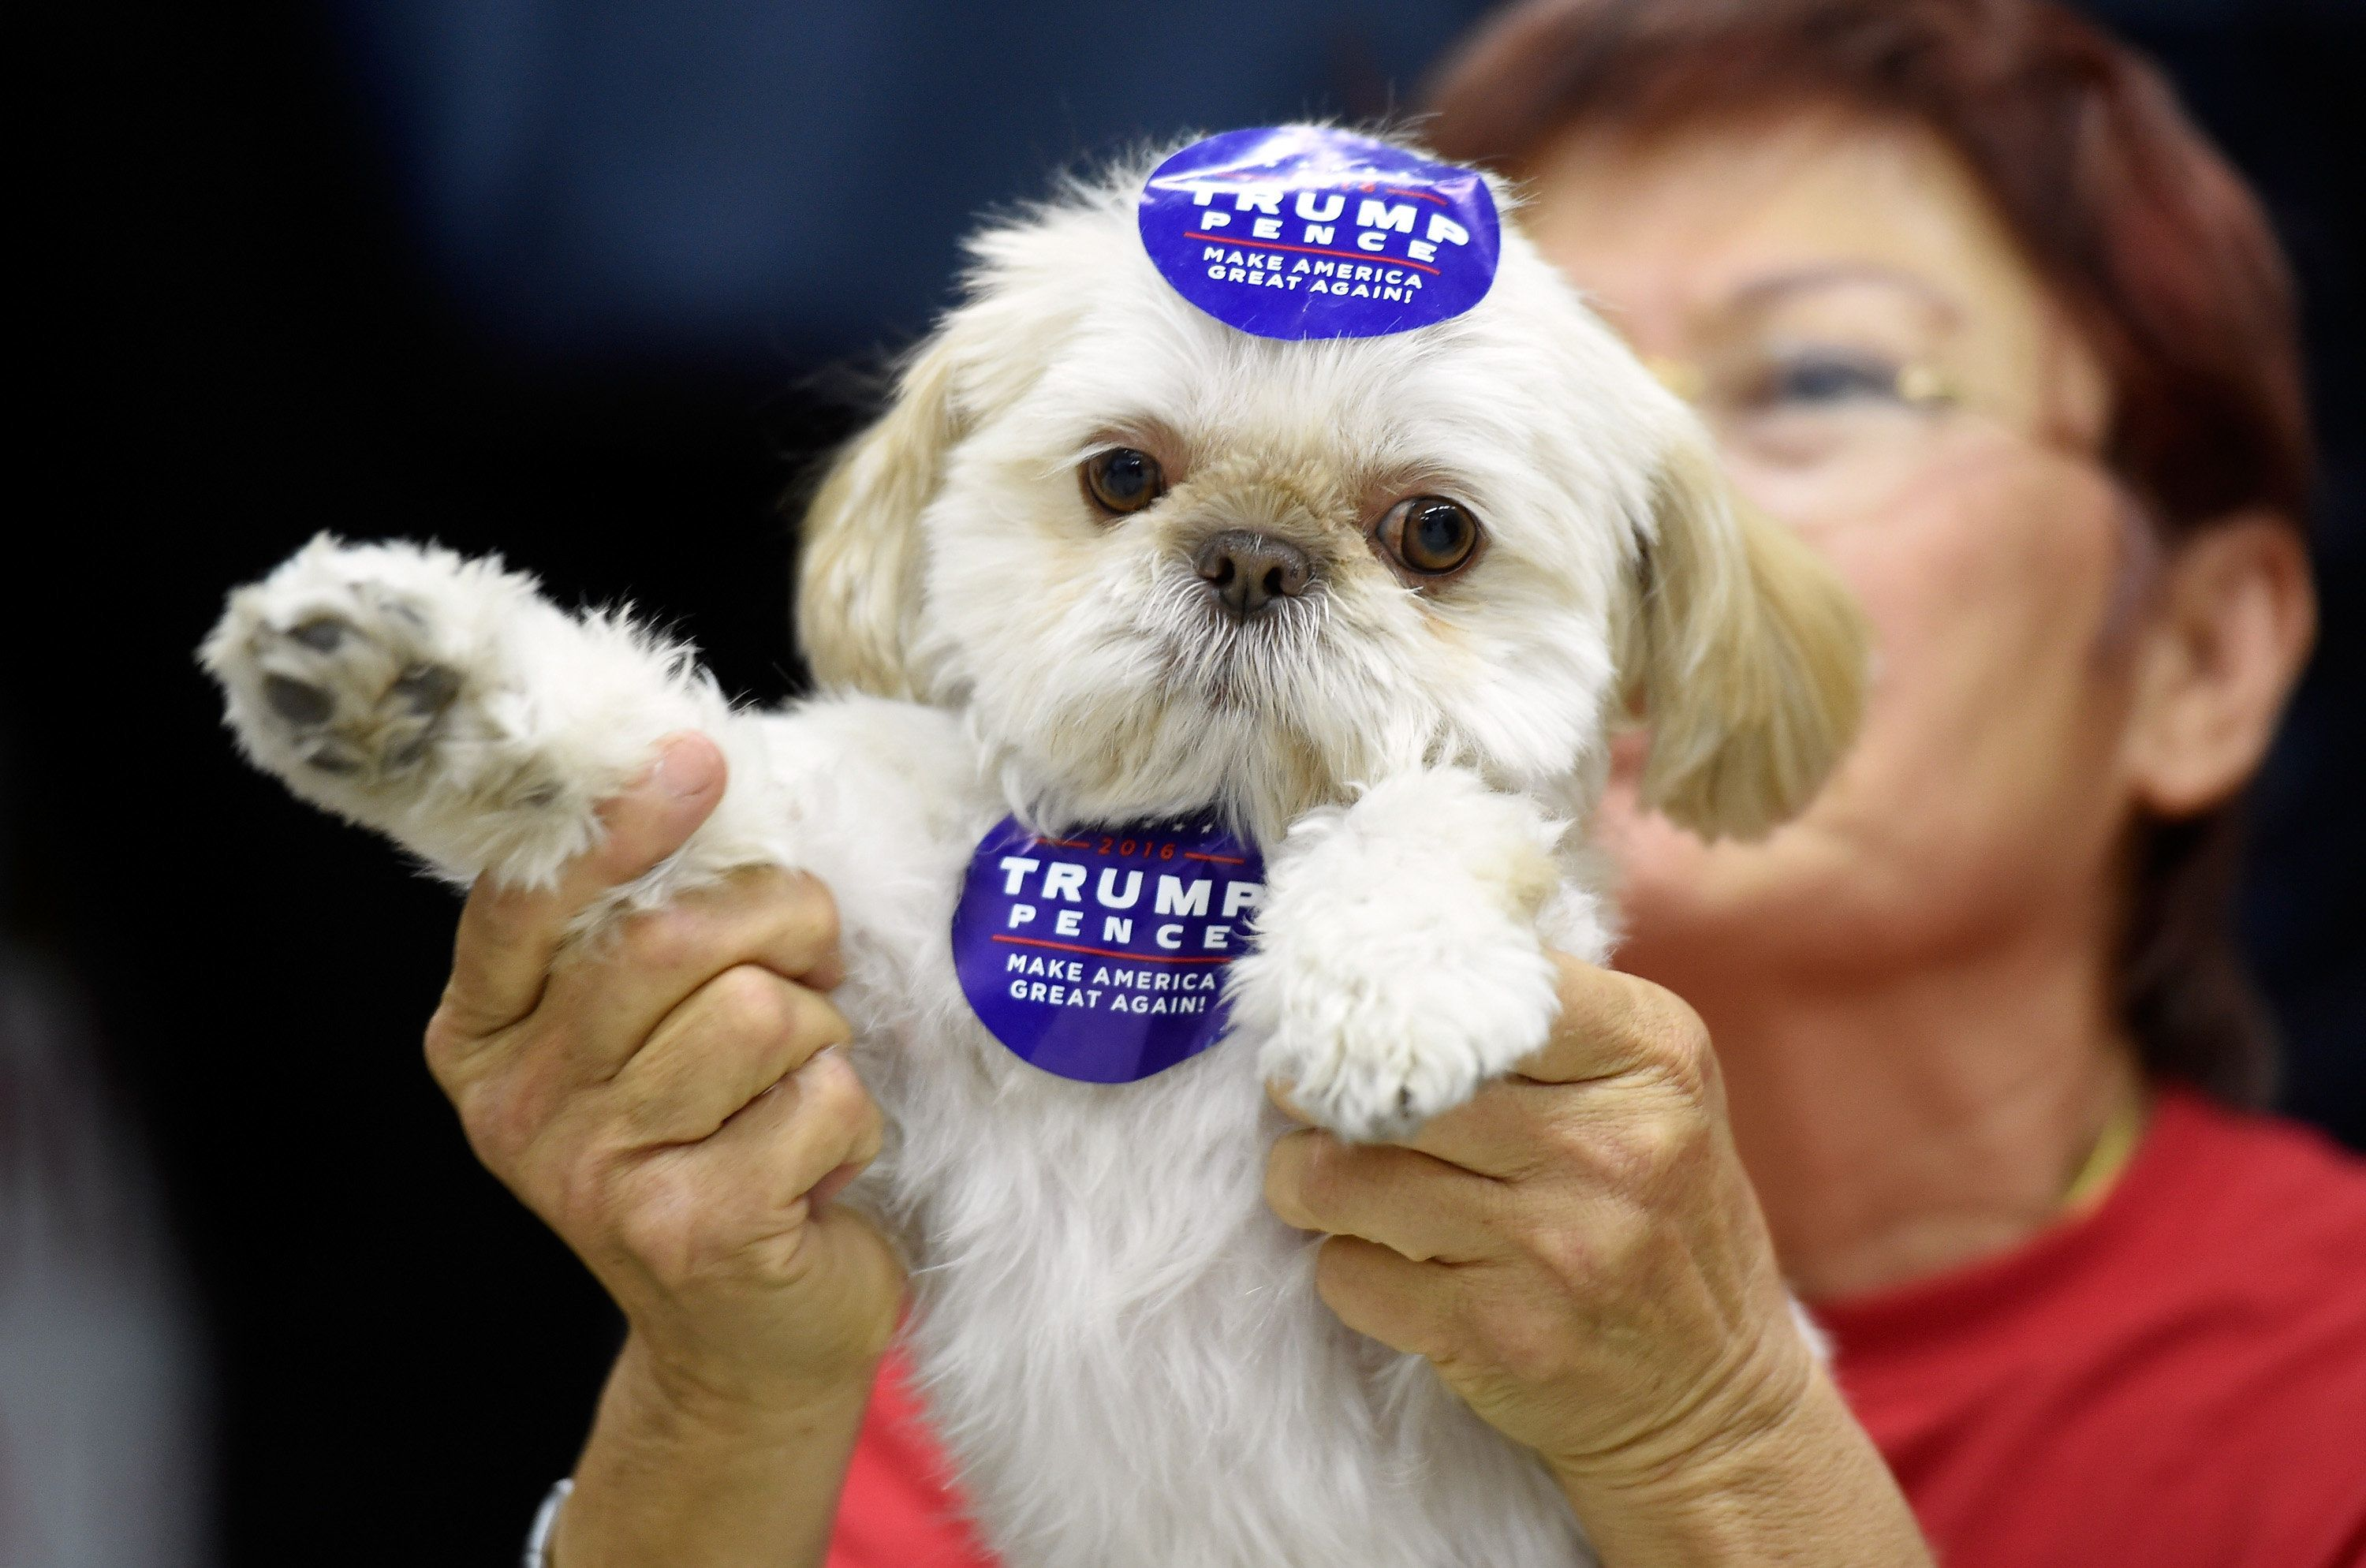 LAS VEGAS, NV - NOVEMBER 03:  Donald Trump supporter Sandi Steinbeck of Las Vegas holds up her dog, a Shih Tzu named Teddy Bear, at a get-out-the-vote rally for the Republican presidential nominee at Ahern Manufacturing on November 3, 2016 in Las Vegas, Nevada. Donald Trump Jr. spoke at the event and urged people to vote for his father during early voting, which ends on November 4 in the battleground state, and on Election Day November 8.  (Photo by David Becker/Getty Images)